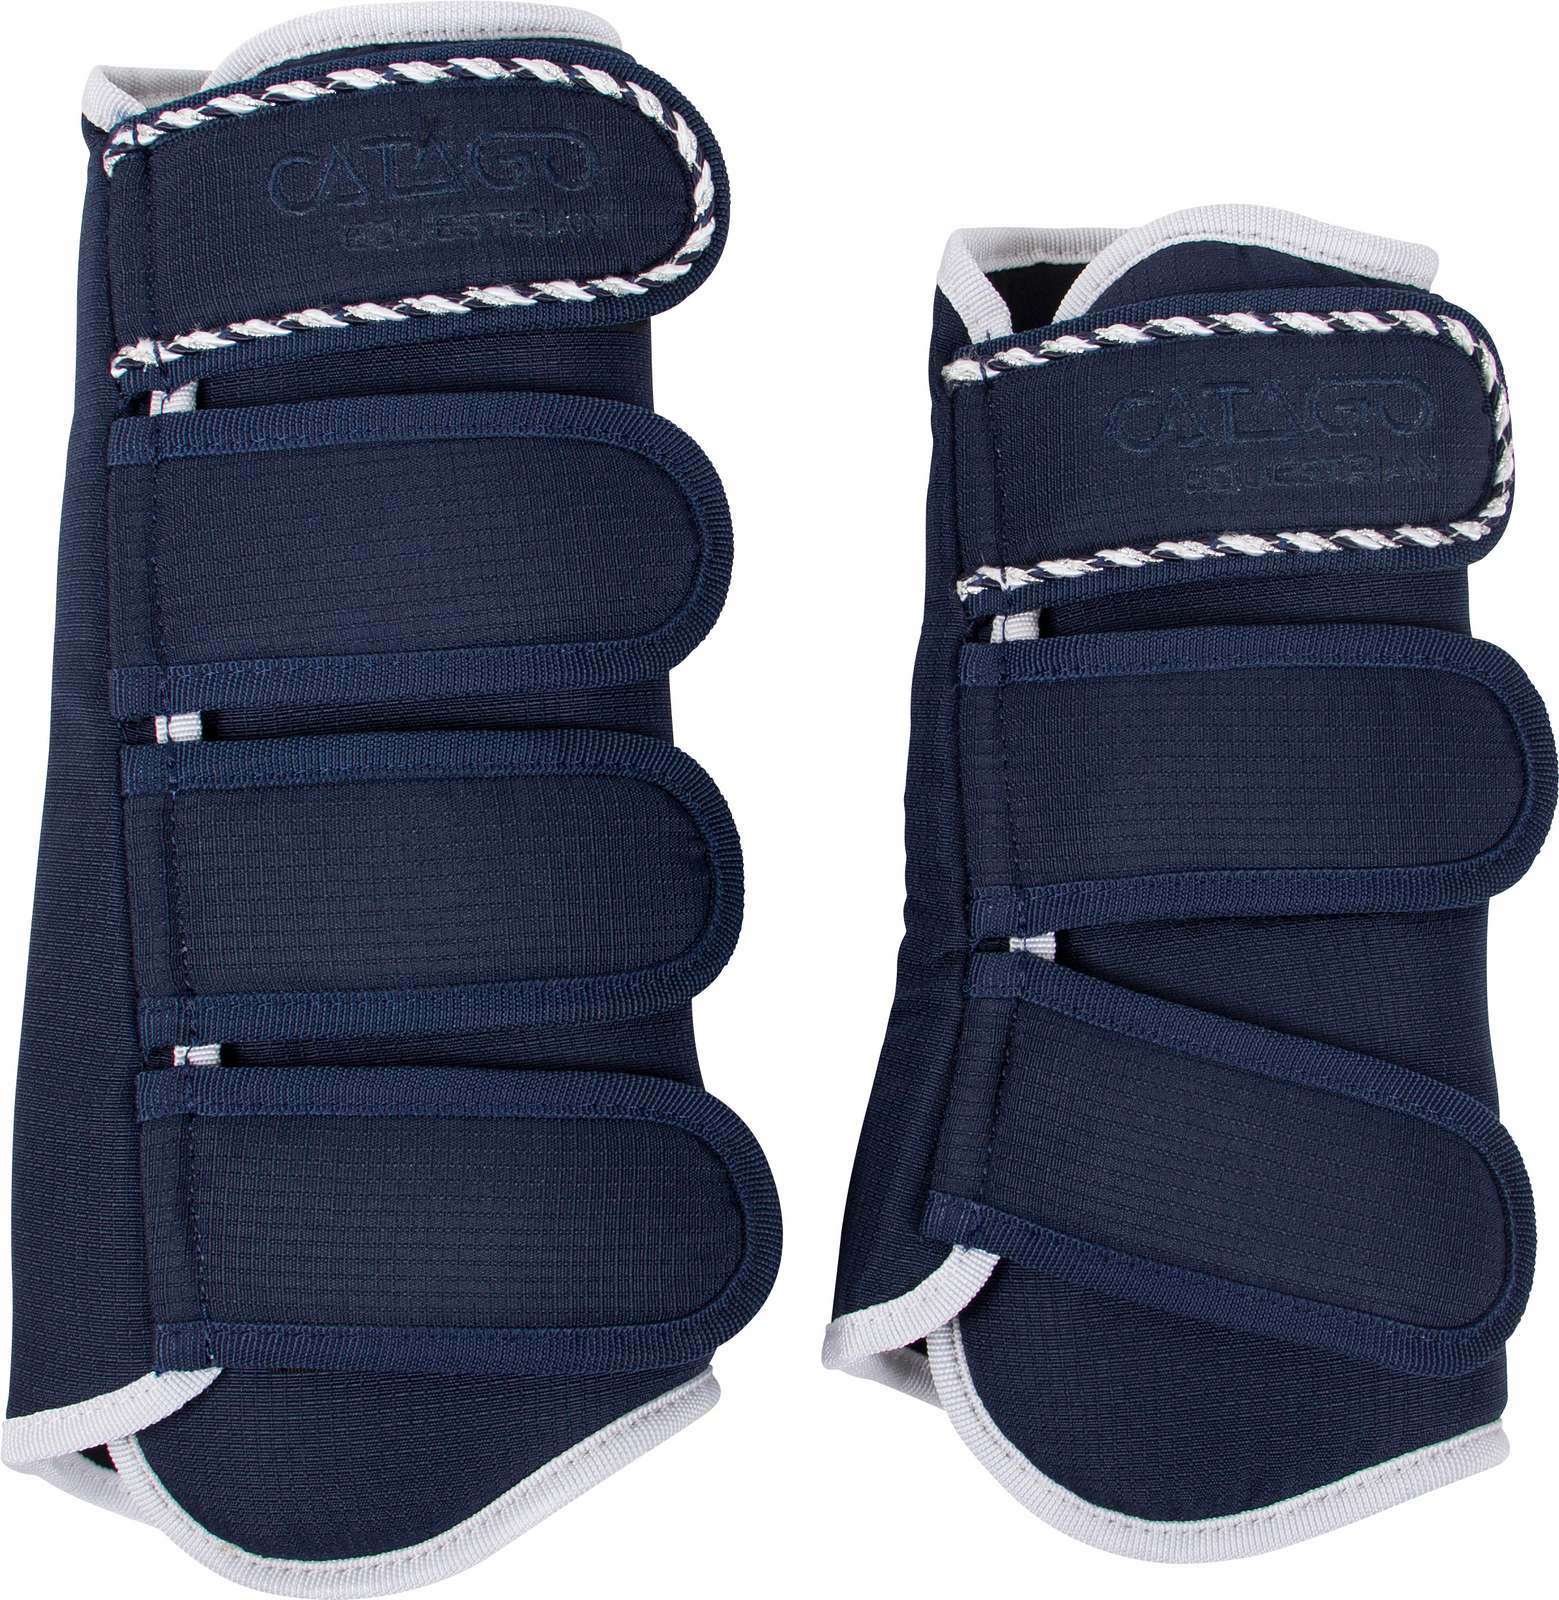 CATAGO Diamond Brushing Boots - Navy / White